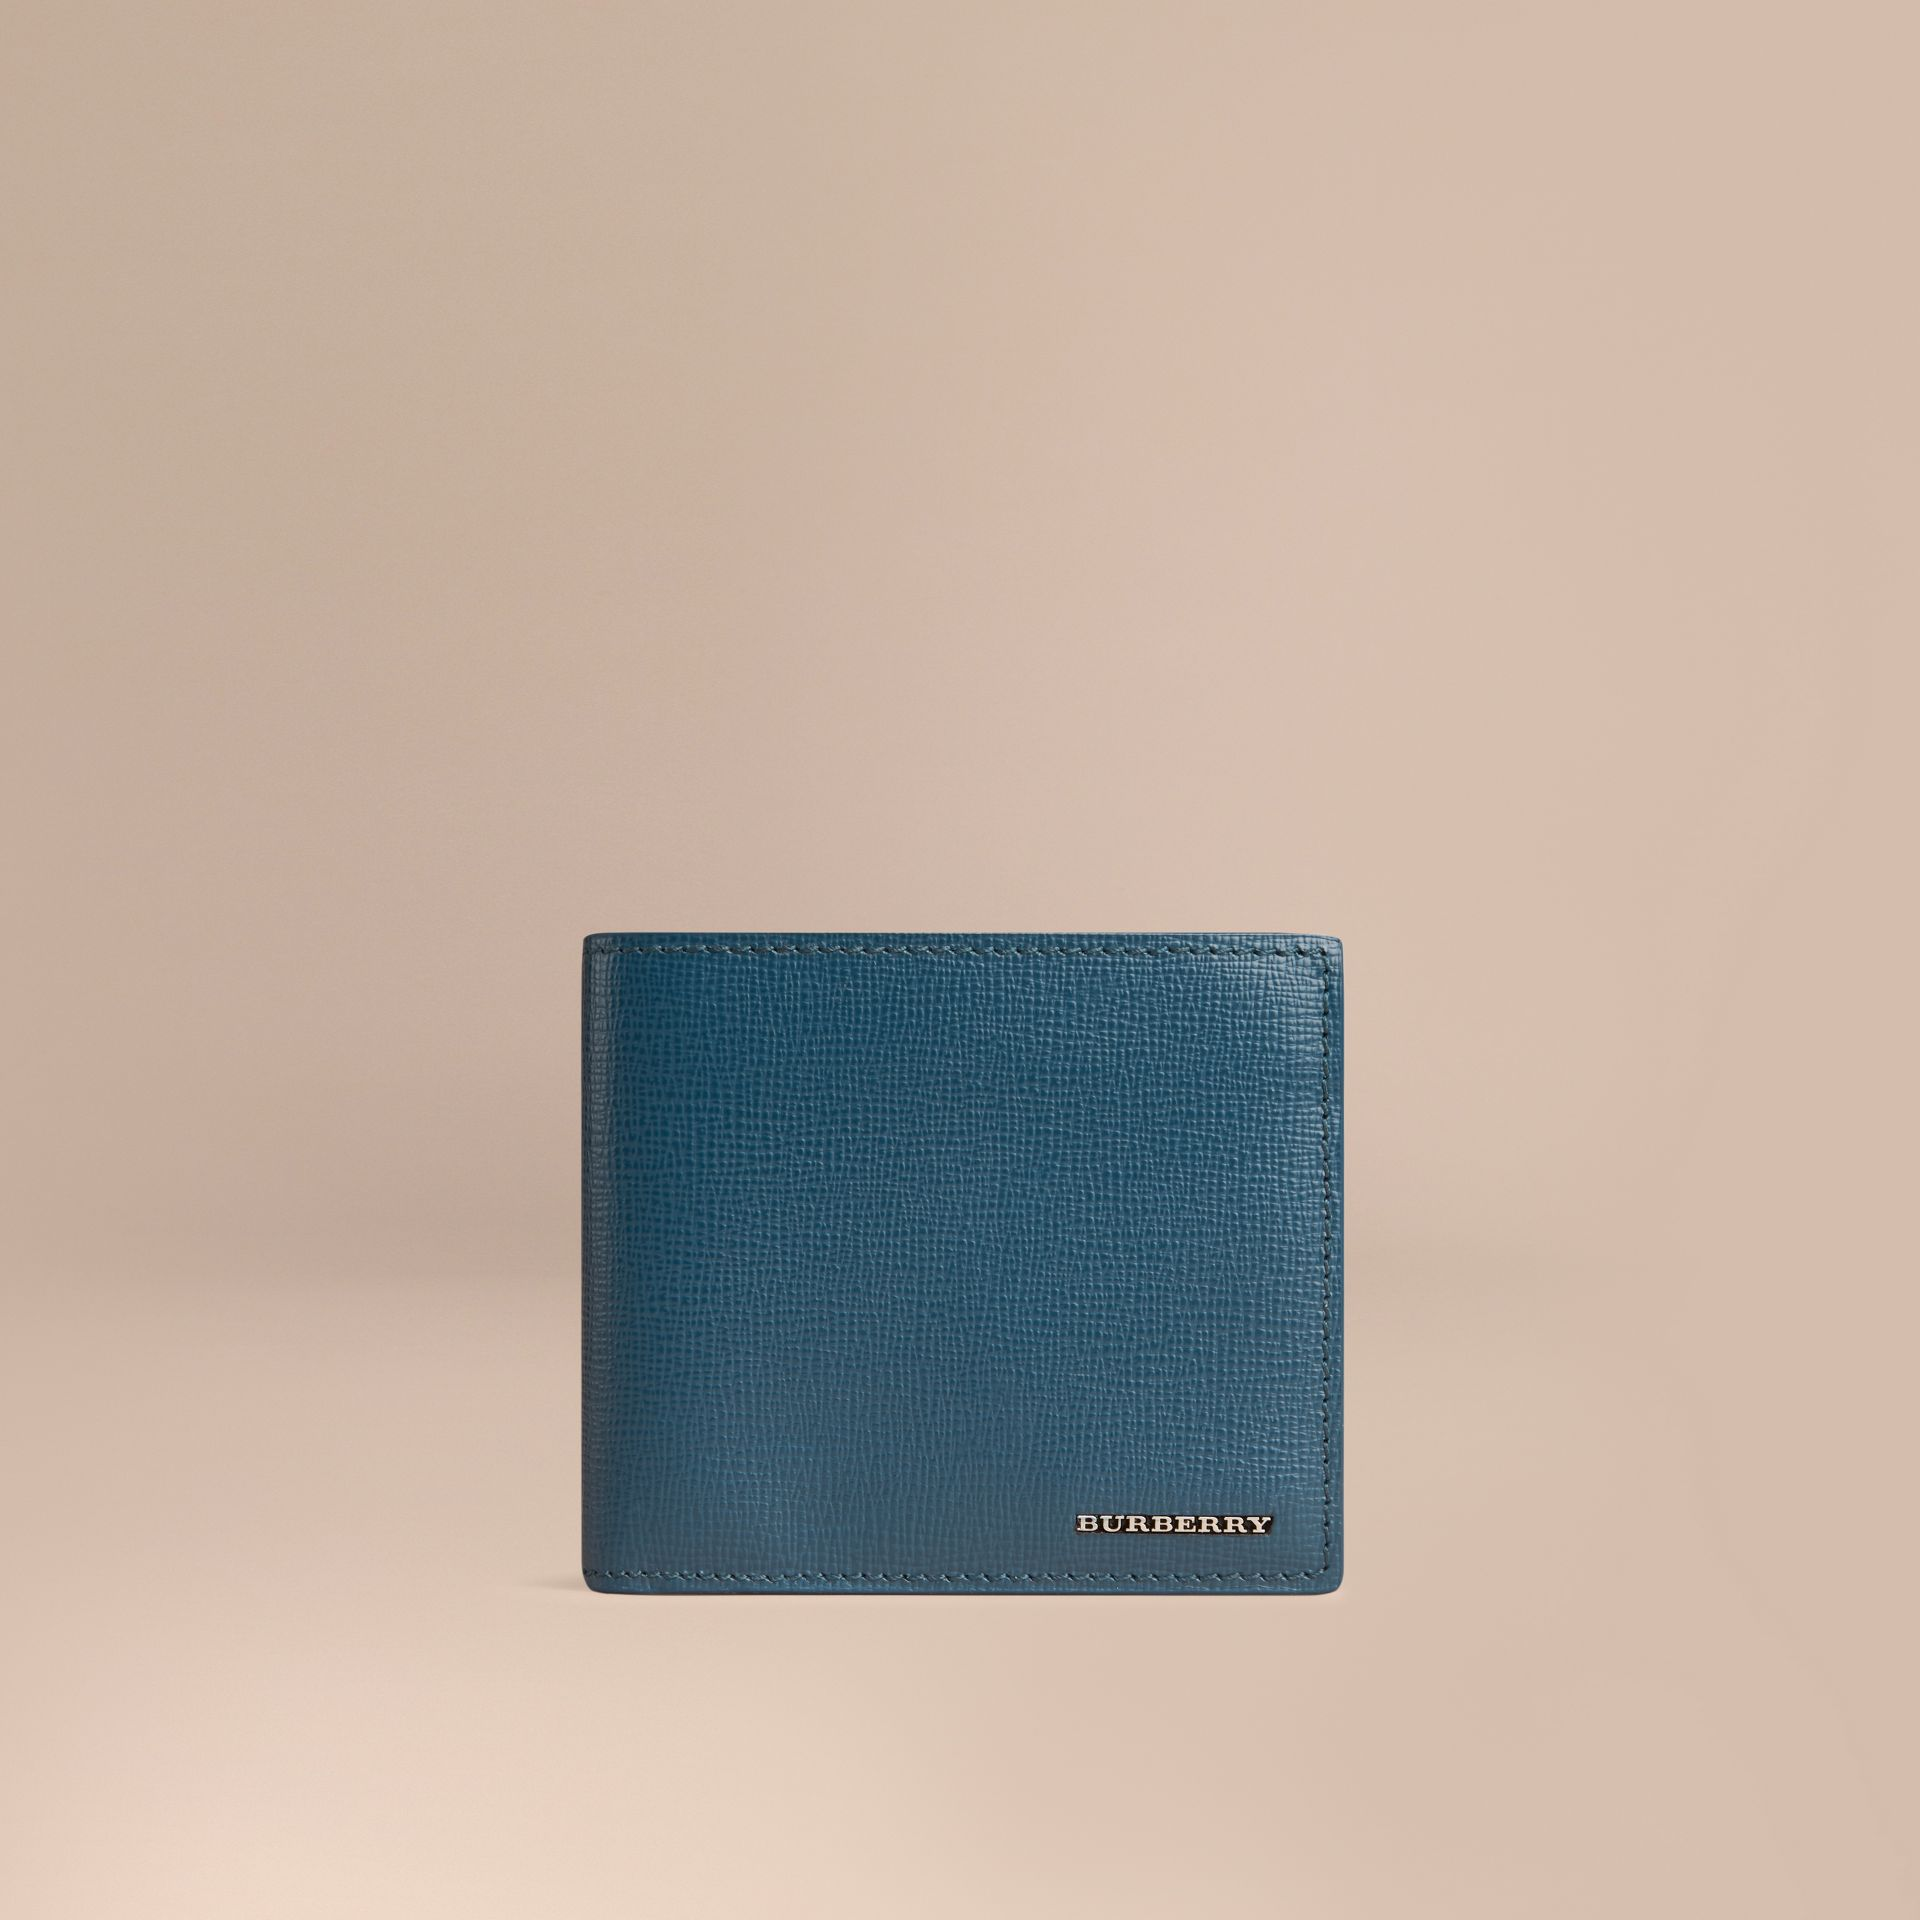 Mineral blue London Leather Folding Wallet Mineral Blue - gallery image 1